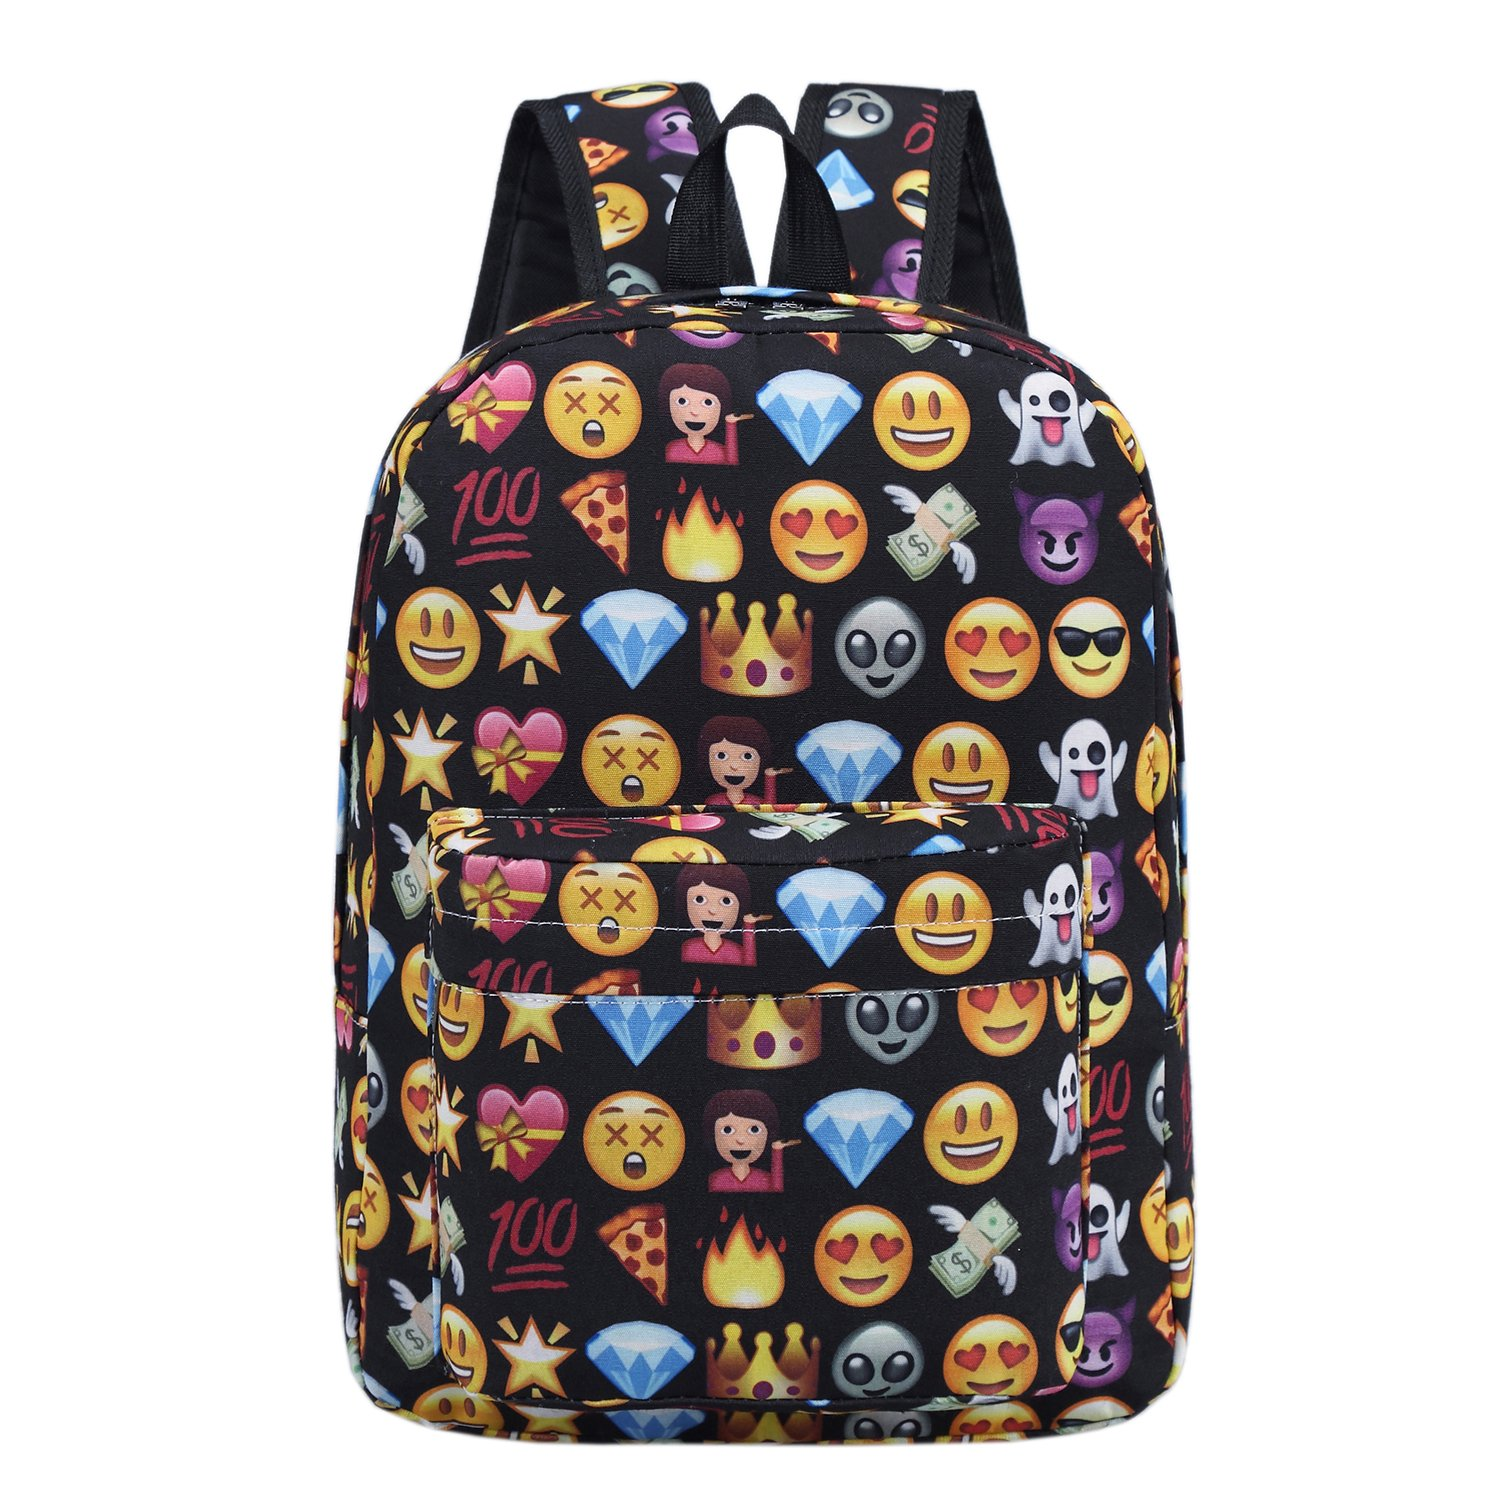 880c75a1465 good Backpack for girls boy cute school Backpack school bag emoji Backpack  outdoor Daypack (Black